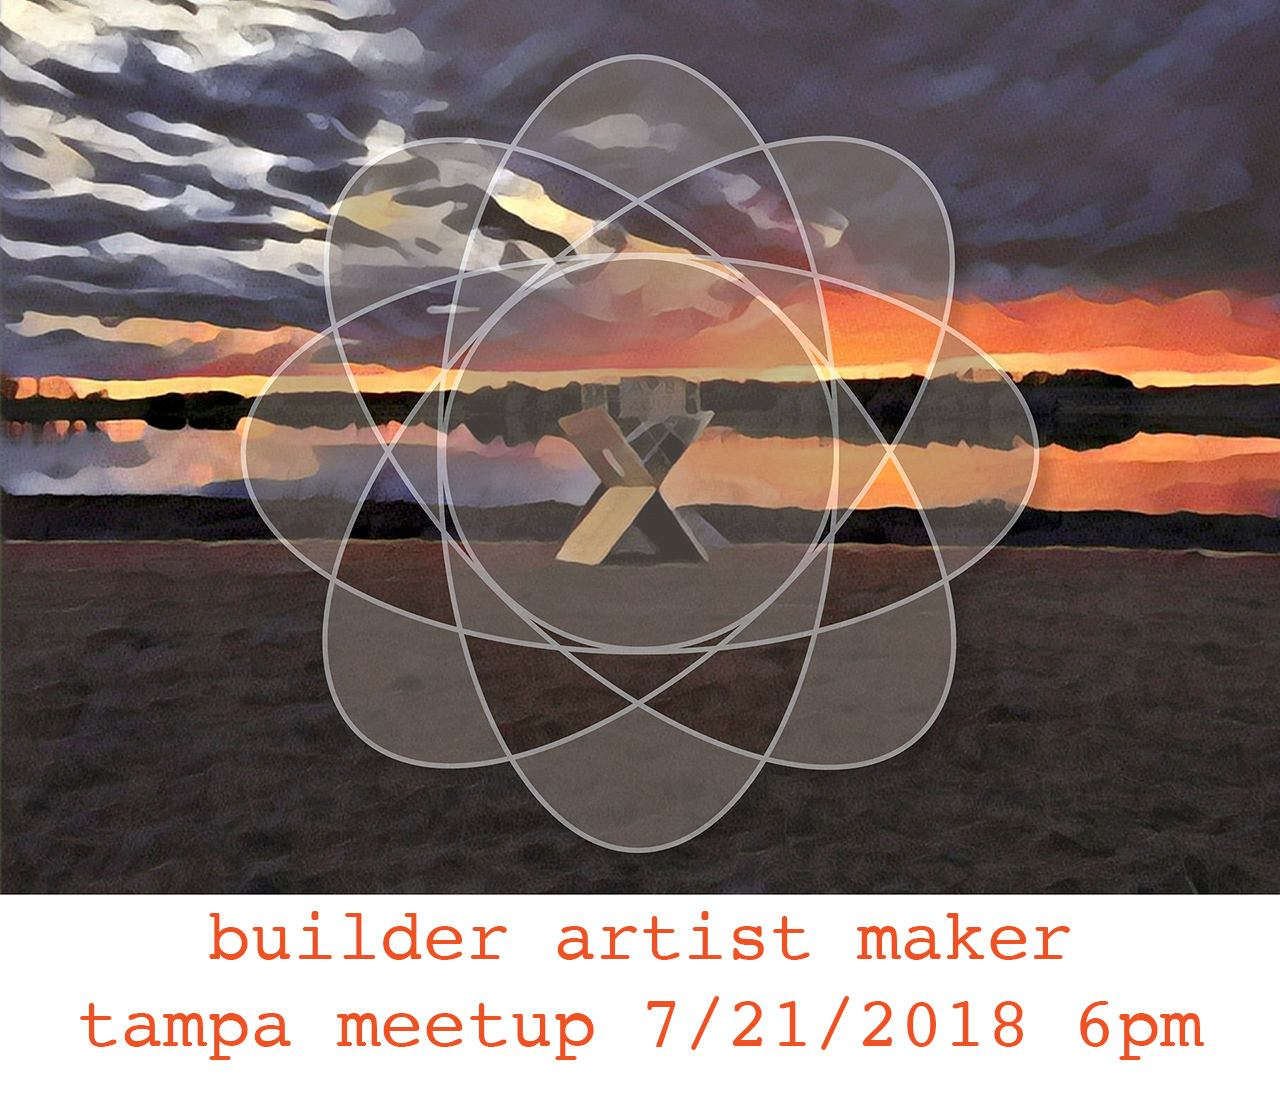 What's A Builder, Artist, and Maker Meetup? 2